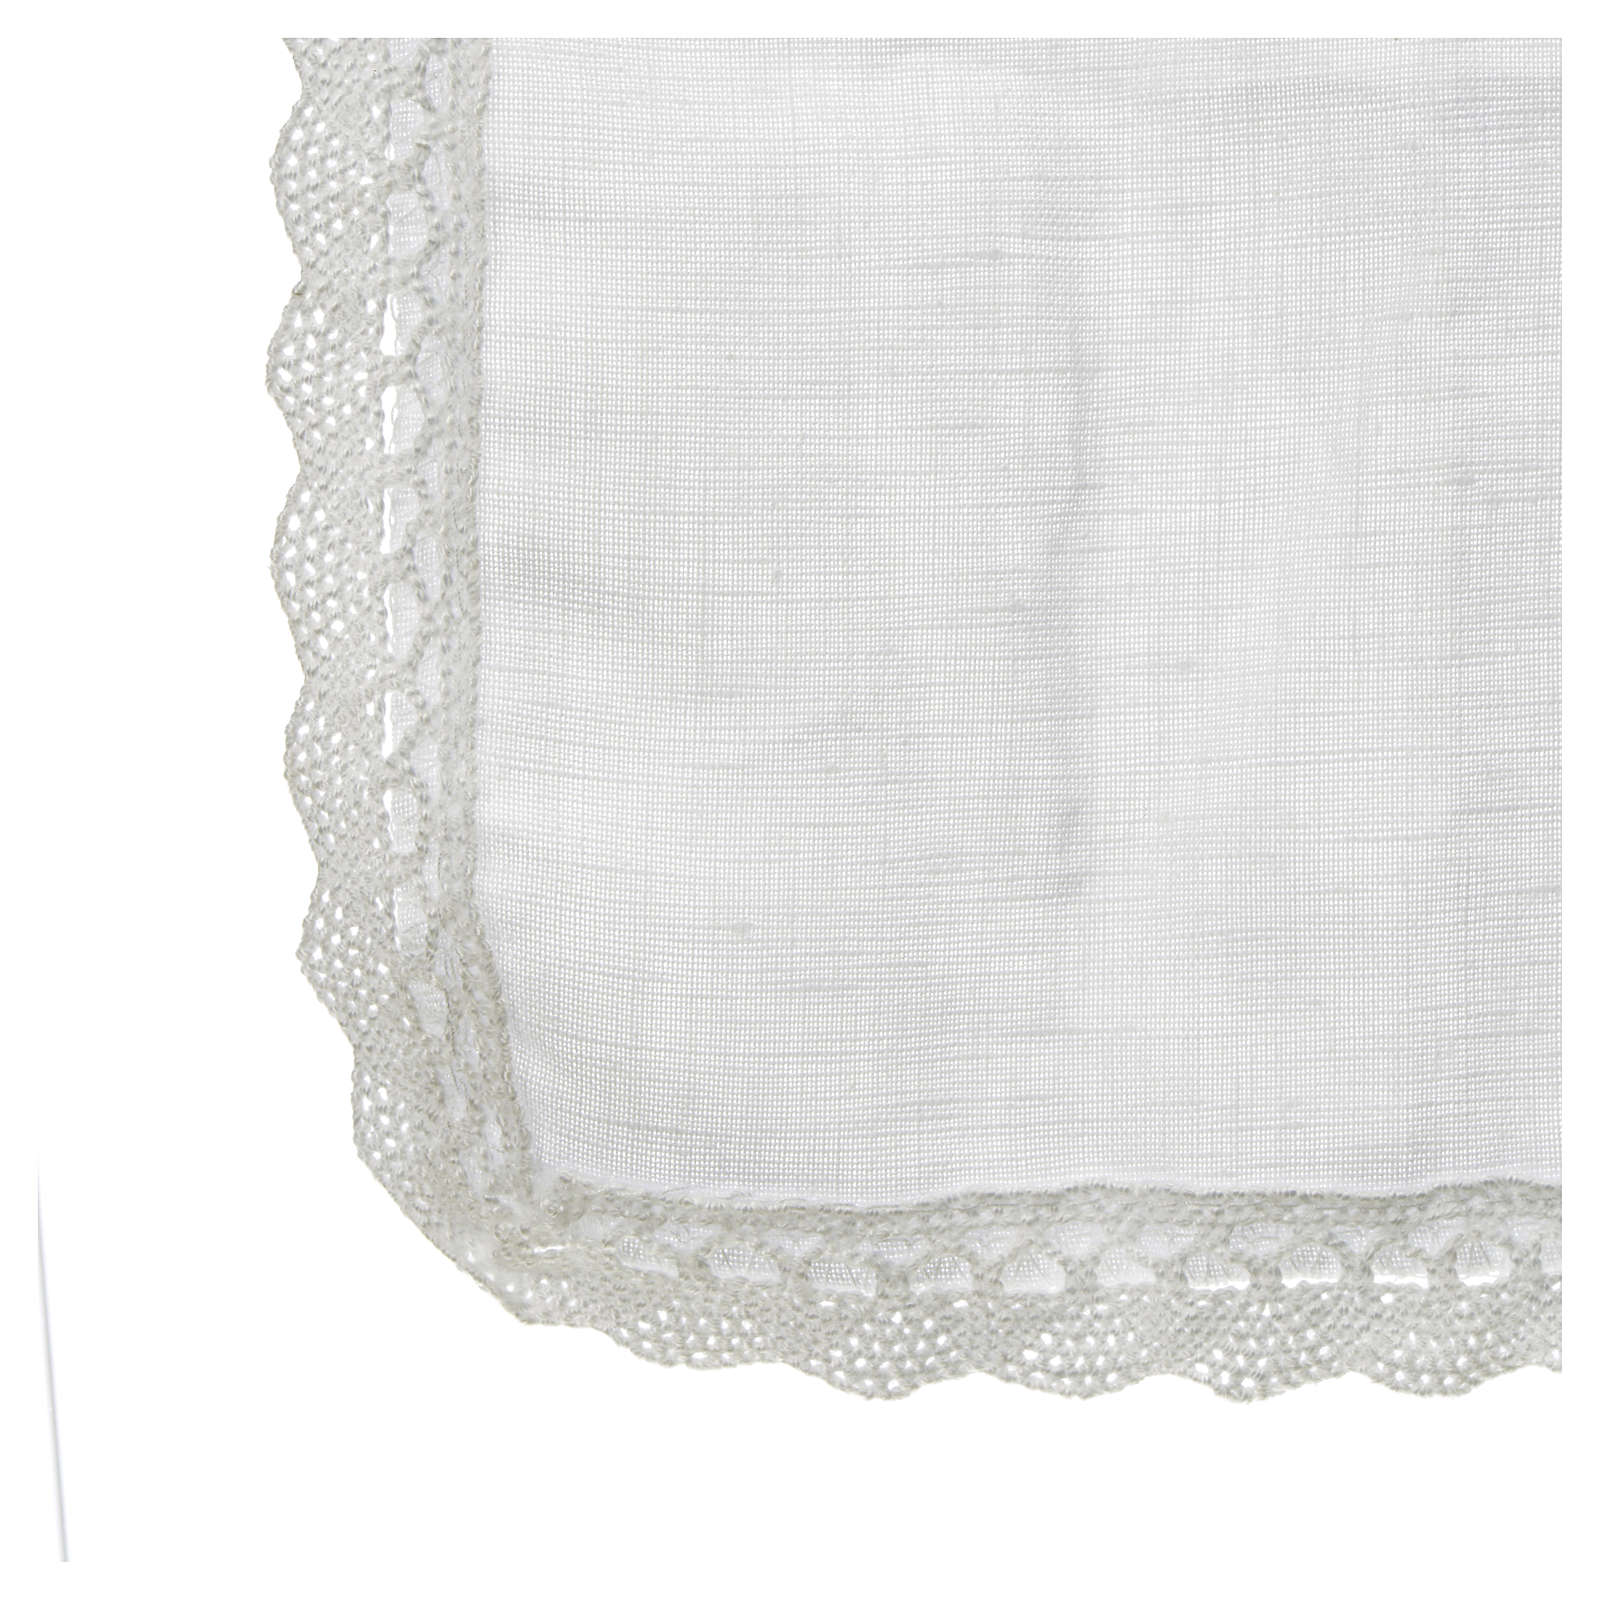 Altar linens, Manuterge in linen and polyester 4